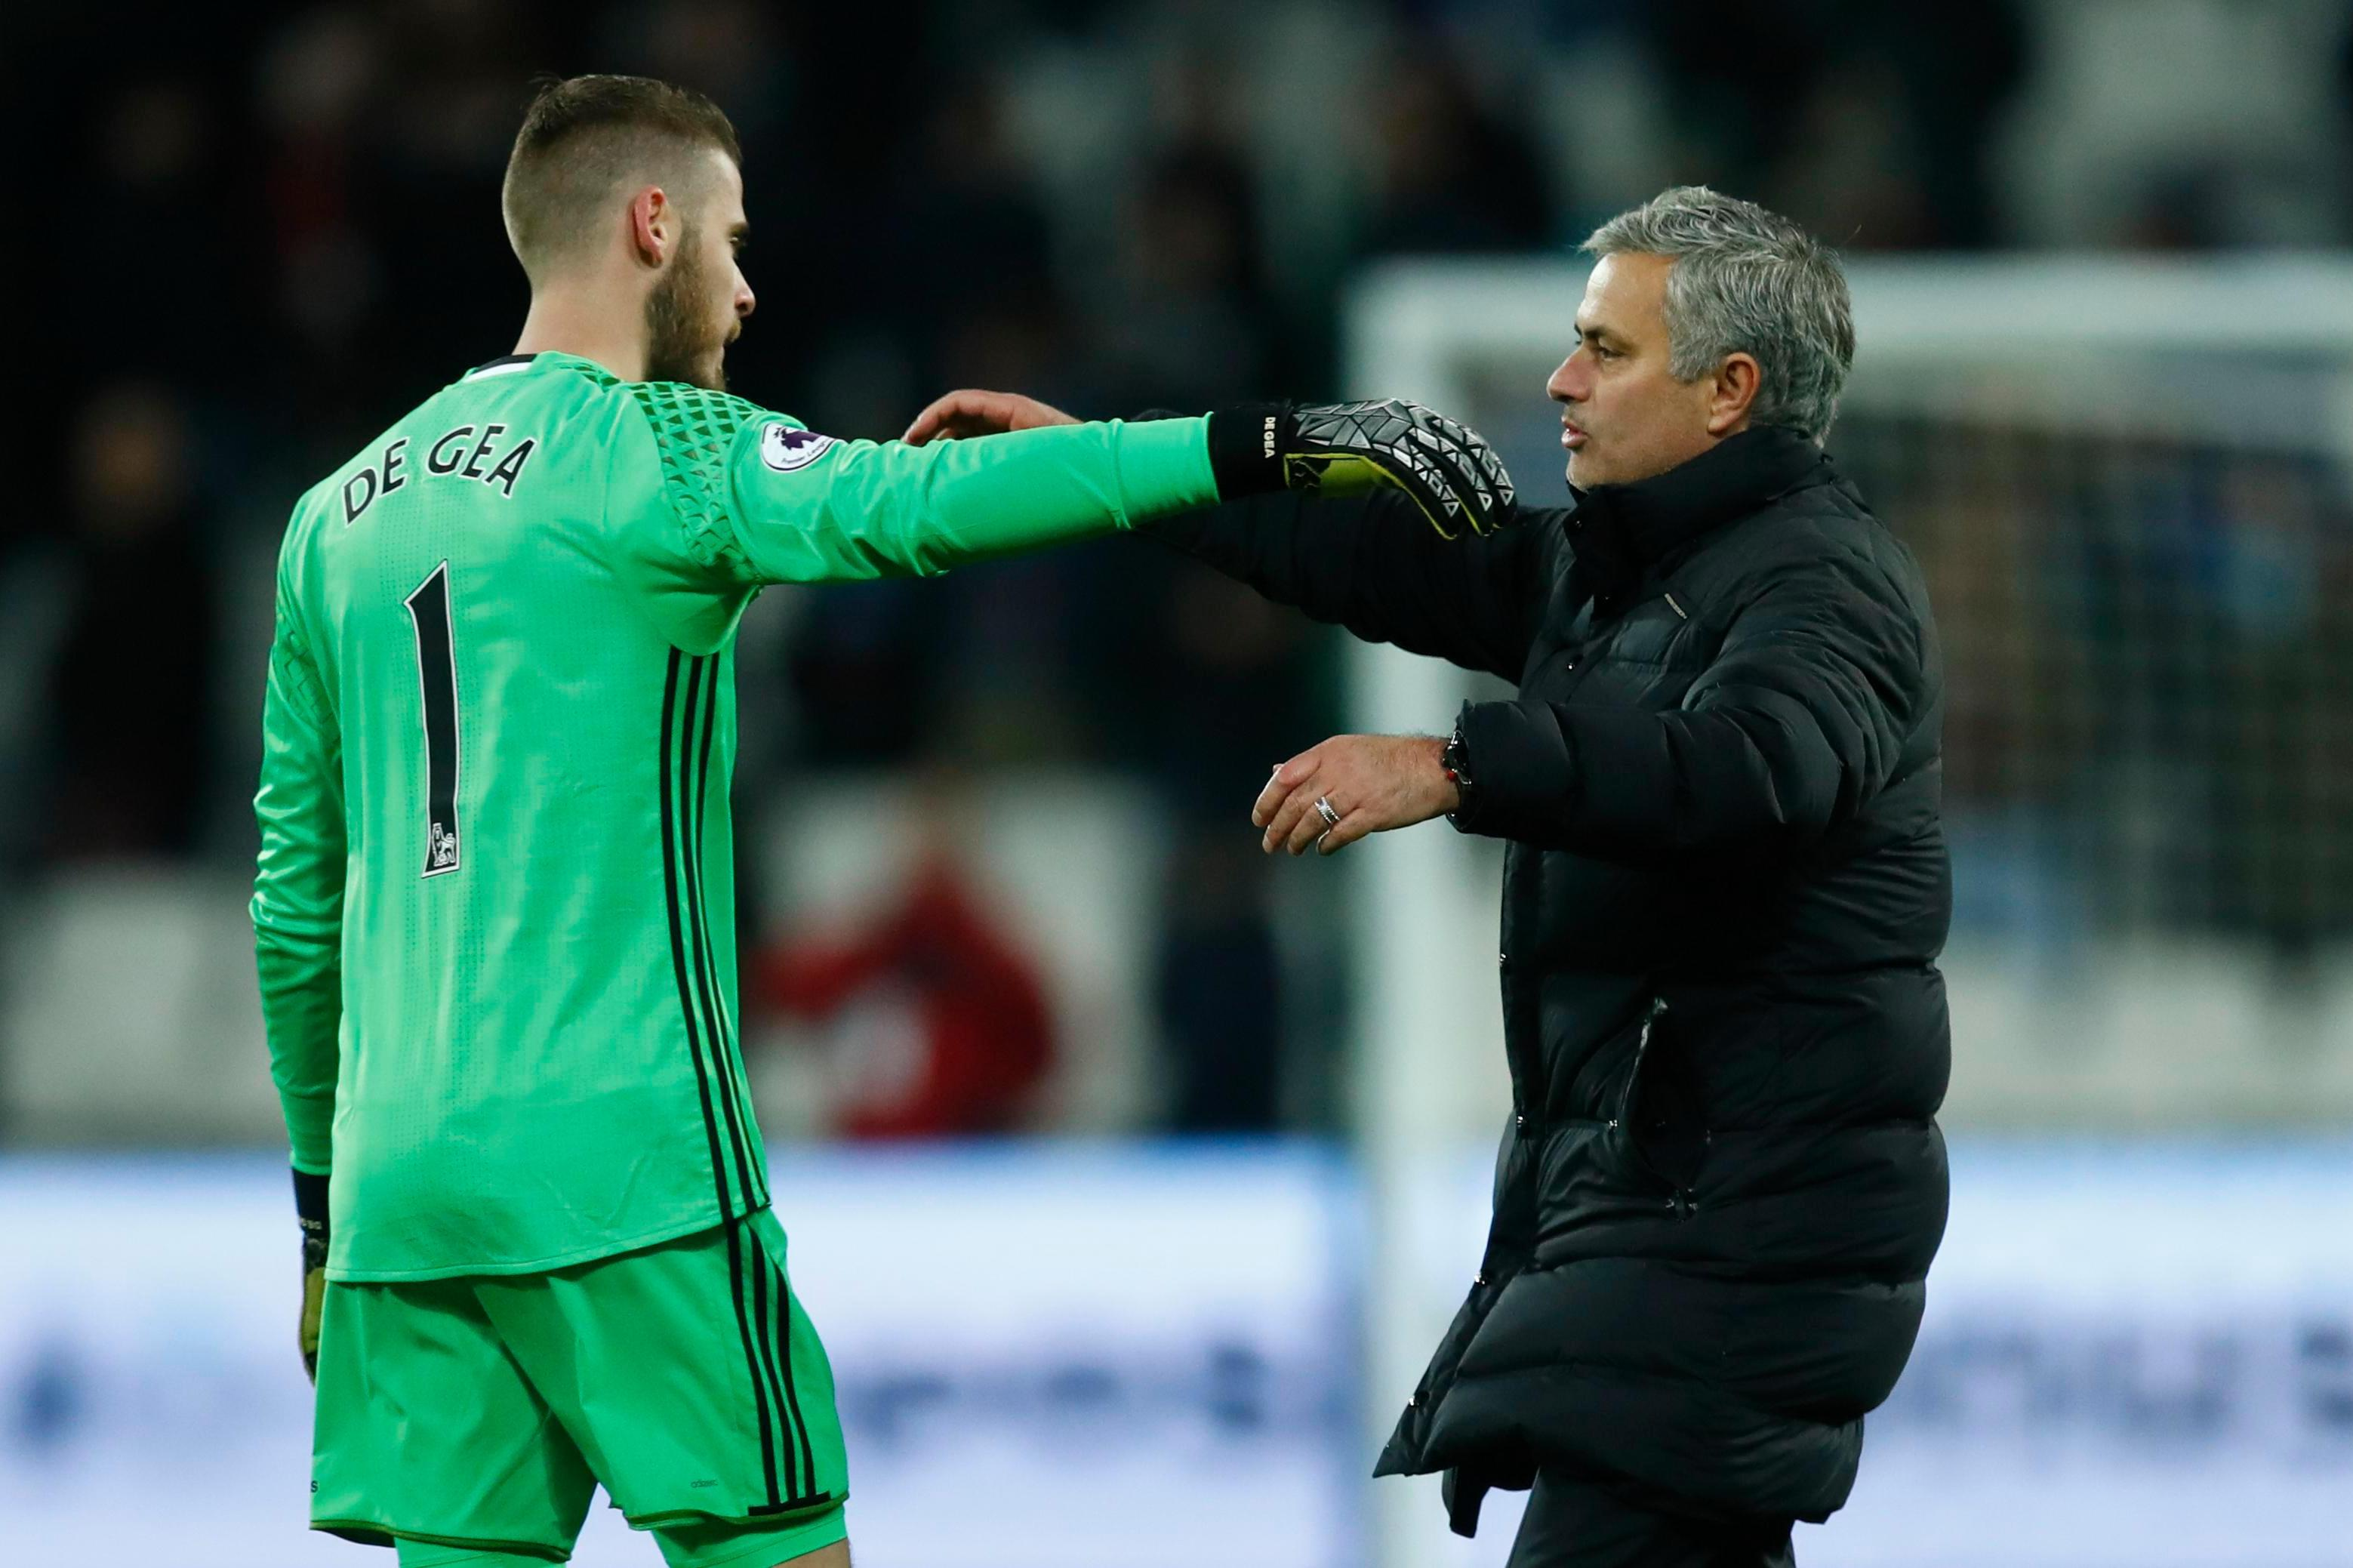 David De Gea backs Jose Mourinho and blames Manchester United's flop players for poor season